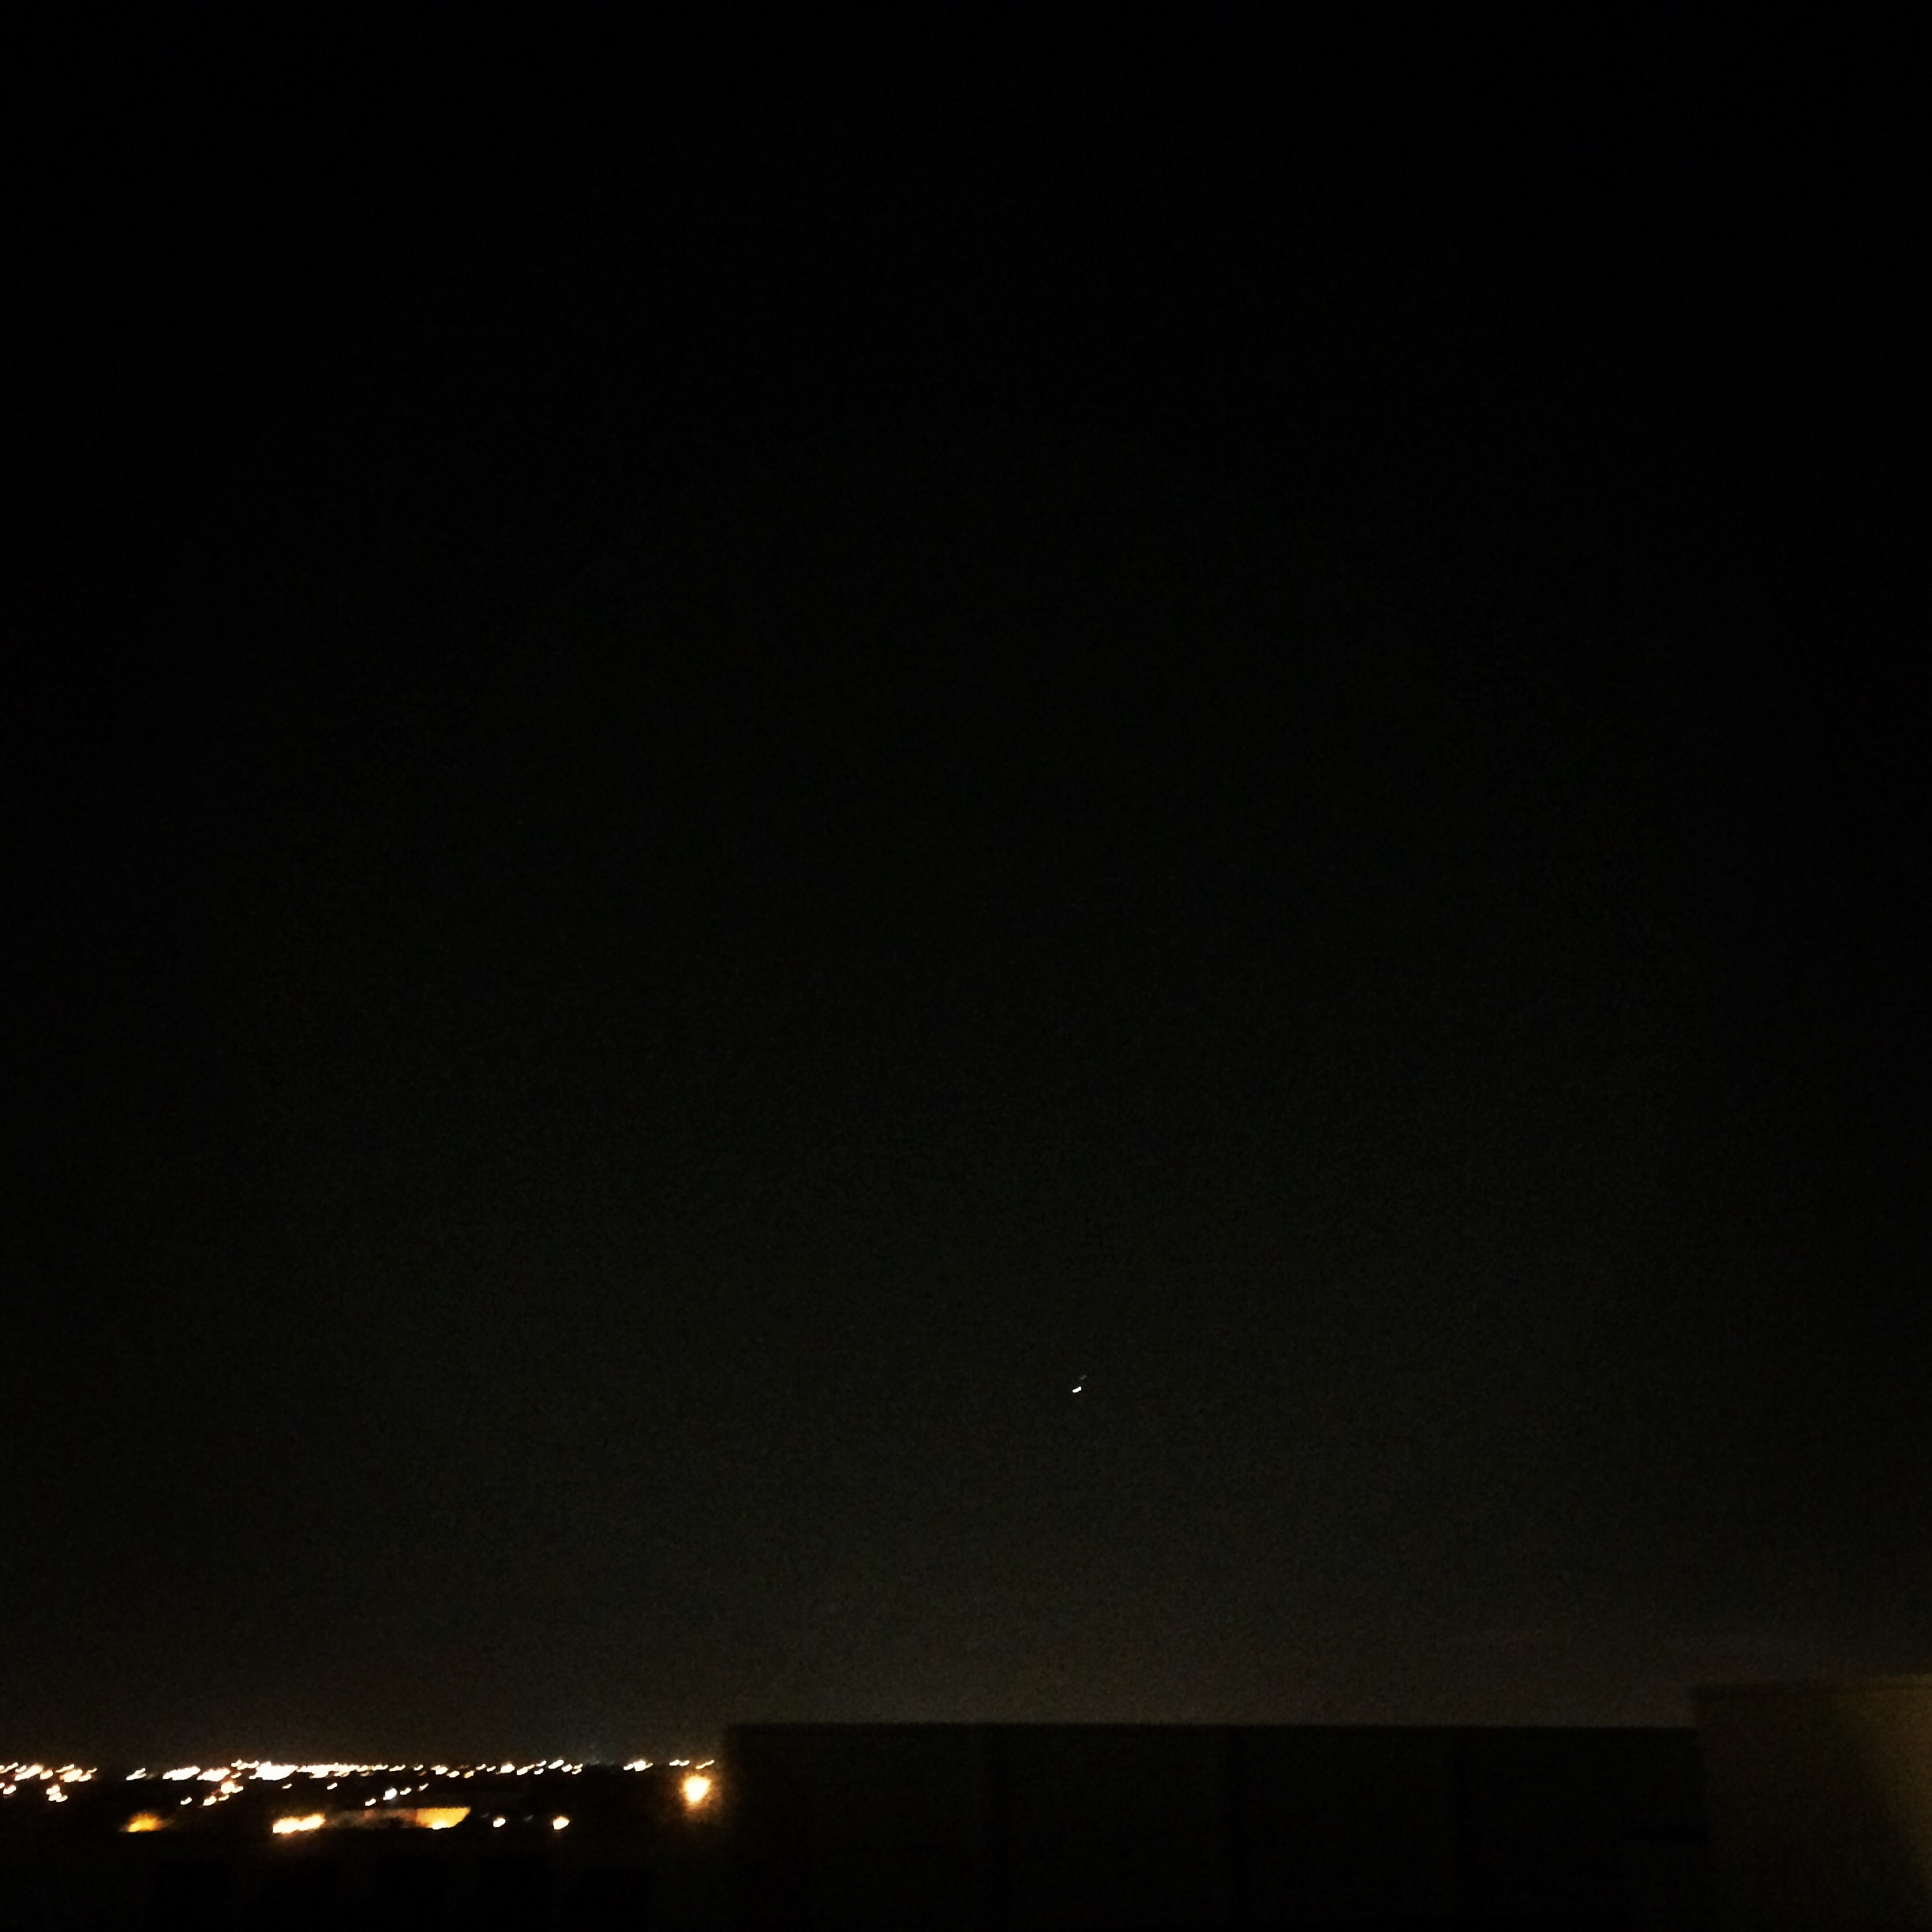 Here's Jupiter and a very obscured Venus